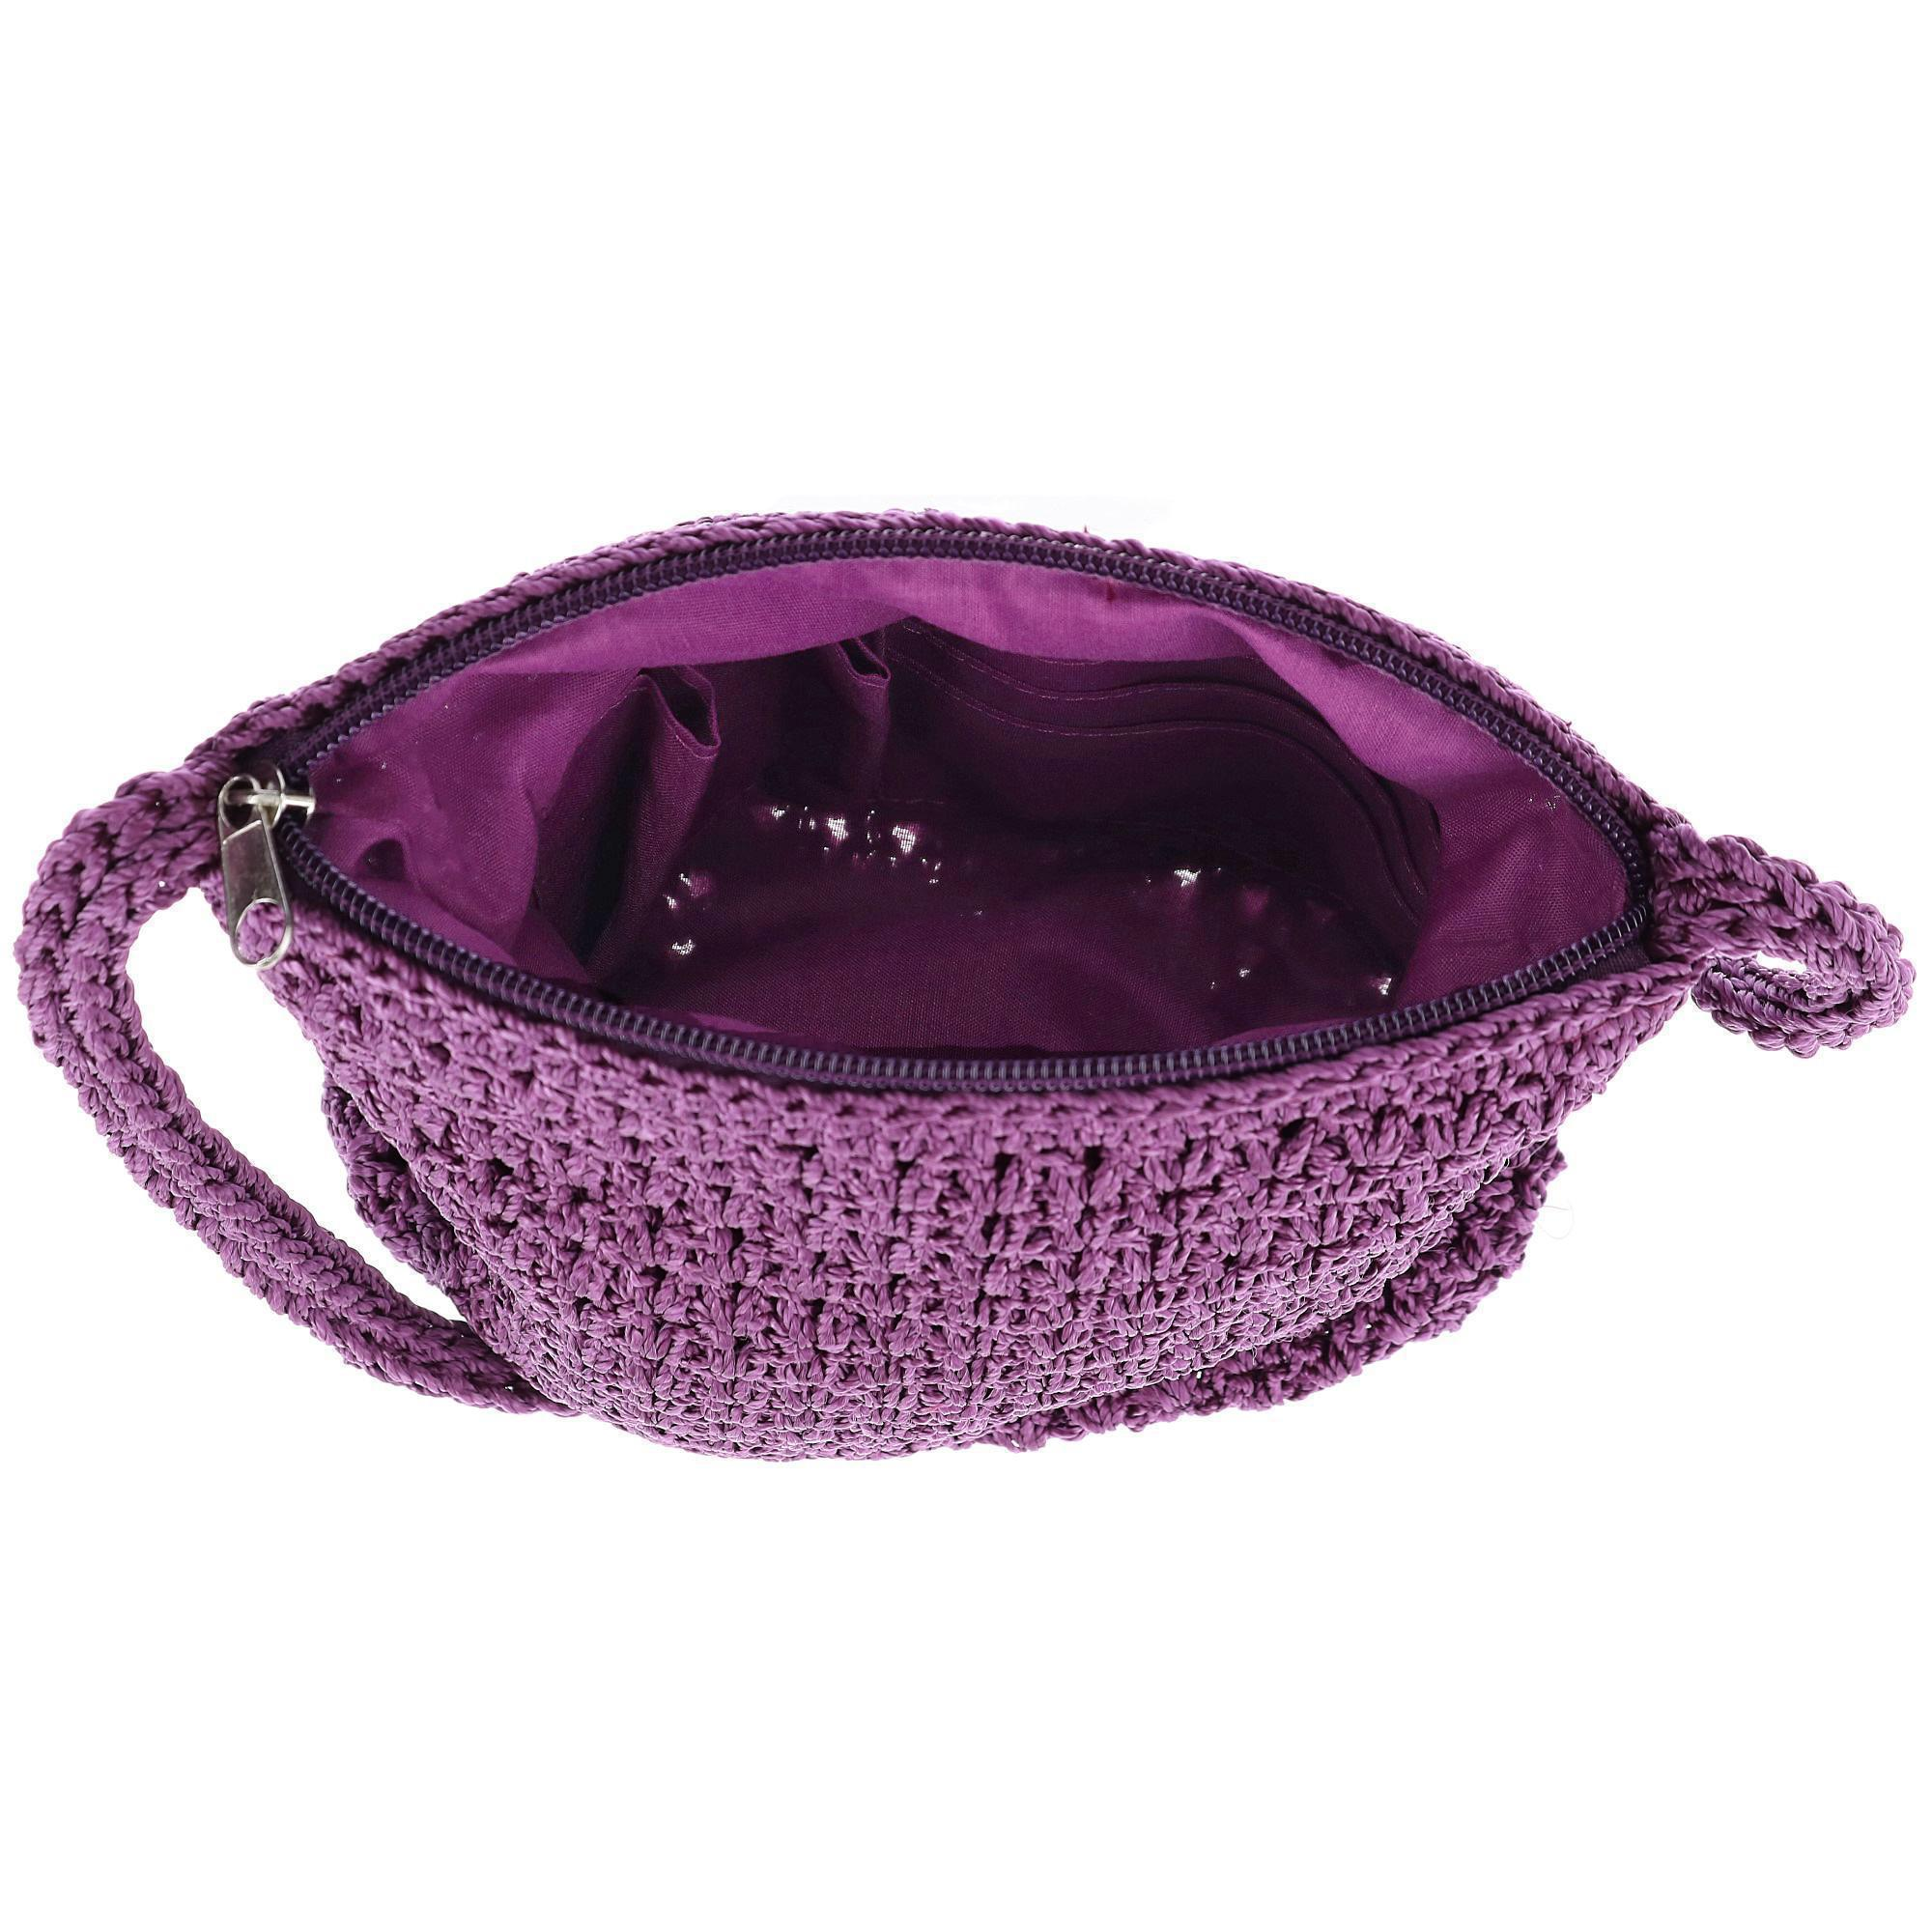 New-CTM-Women-039-s-Crochet-Crossbody-Handbag thumbnail 9